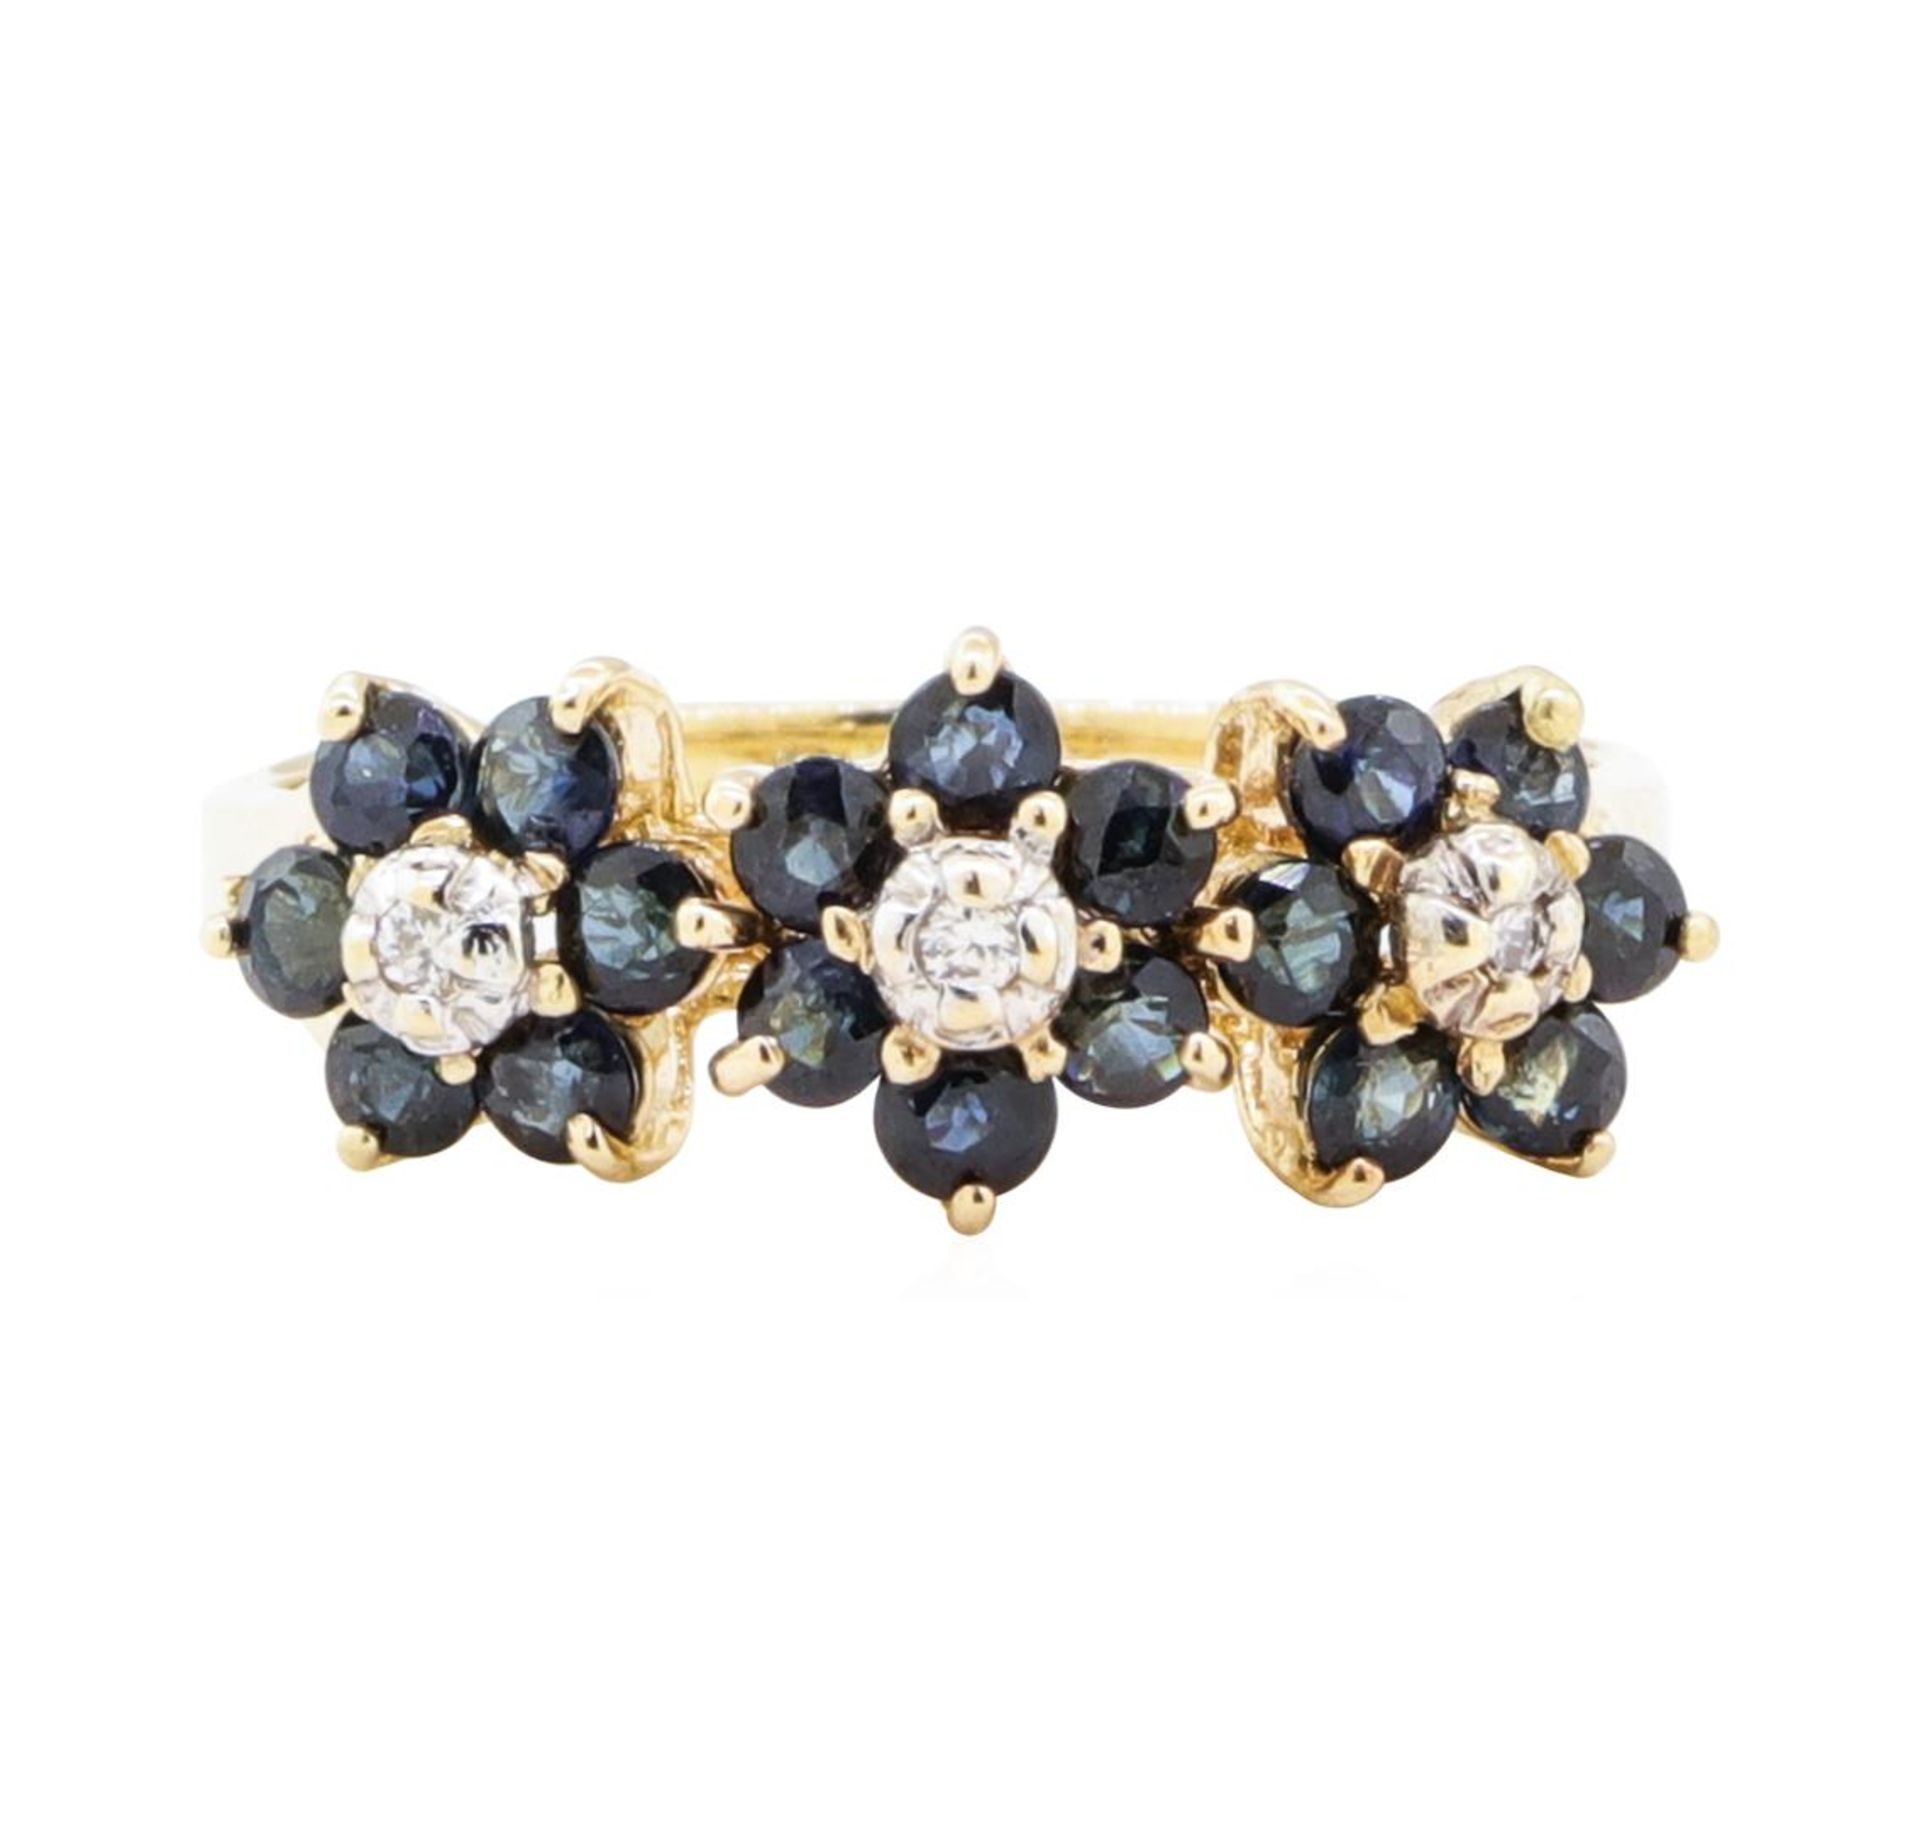 1.05ctw Sapphire and Diamond Ring - 14KT Yellow Gold - Image 2 of 4